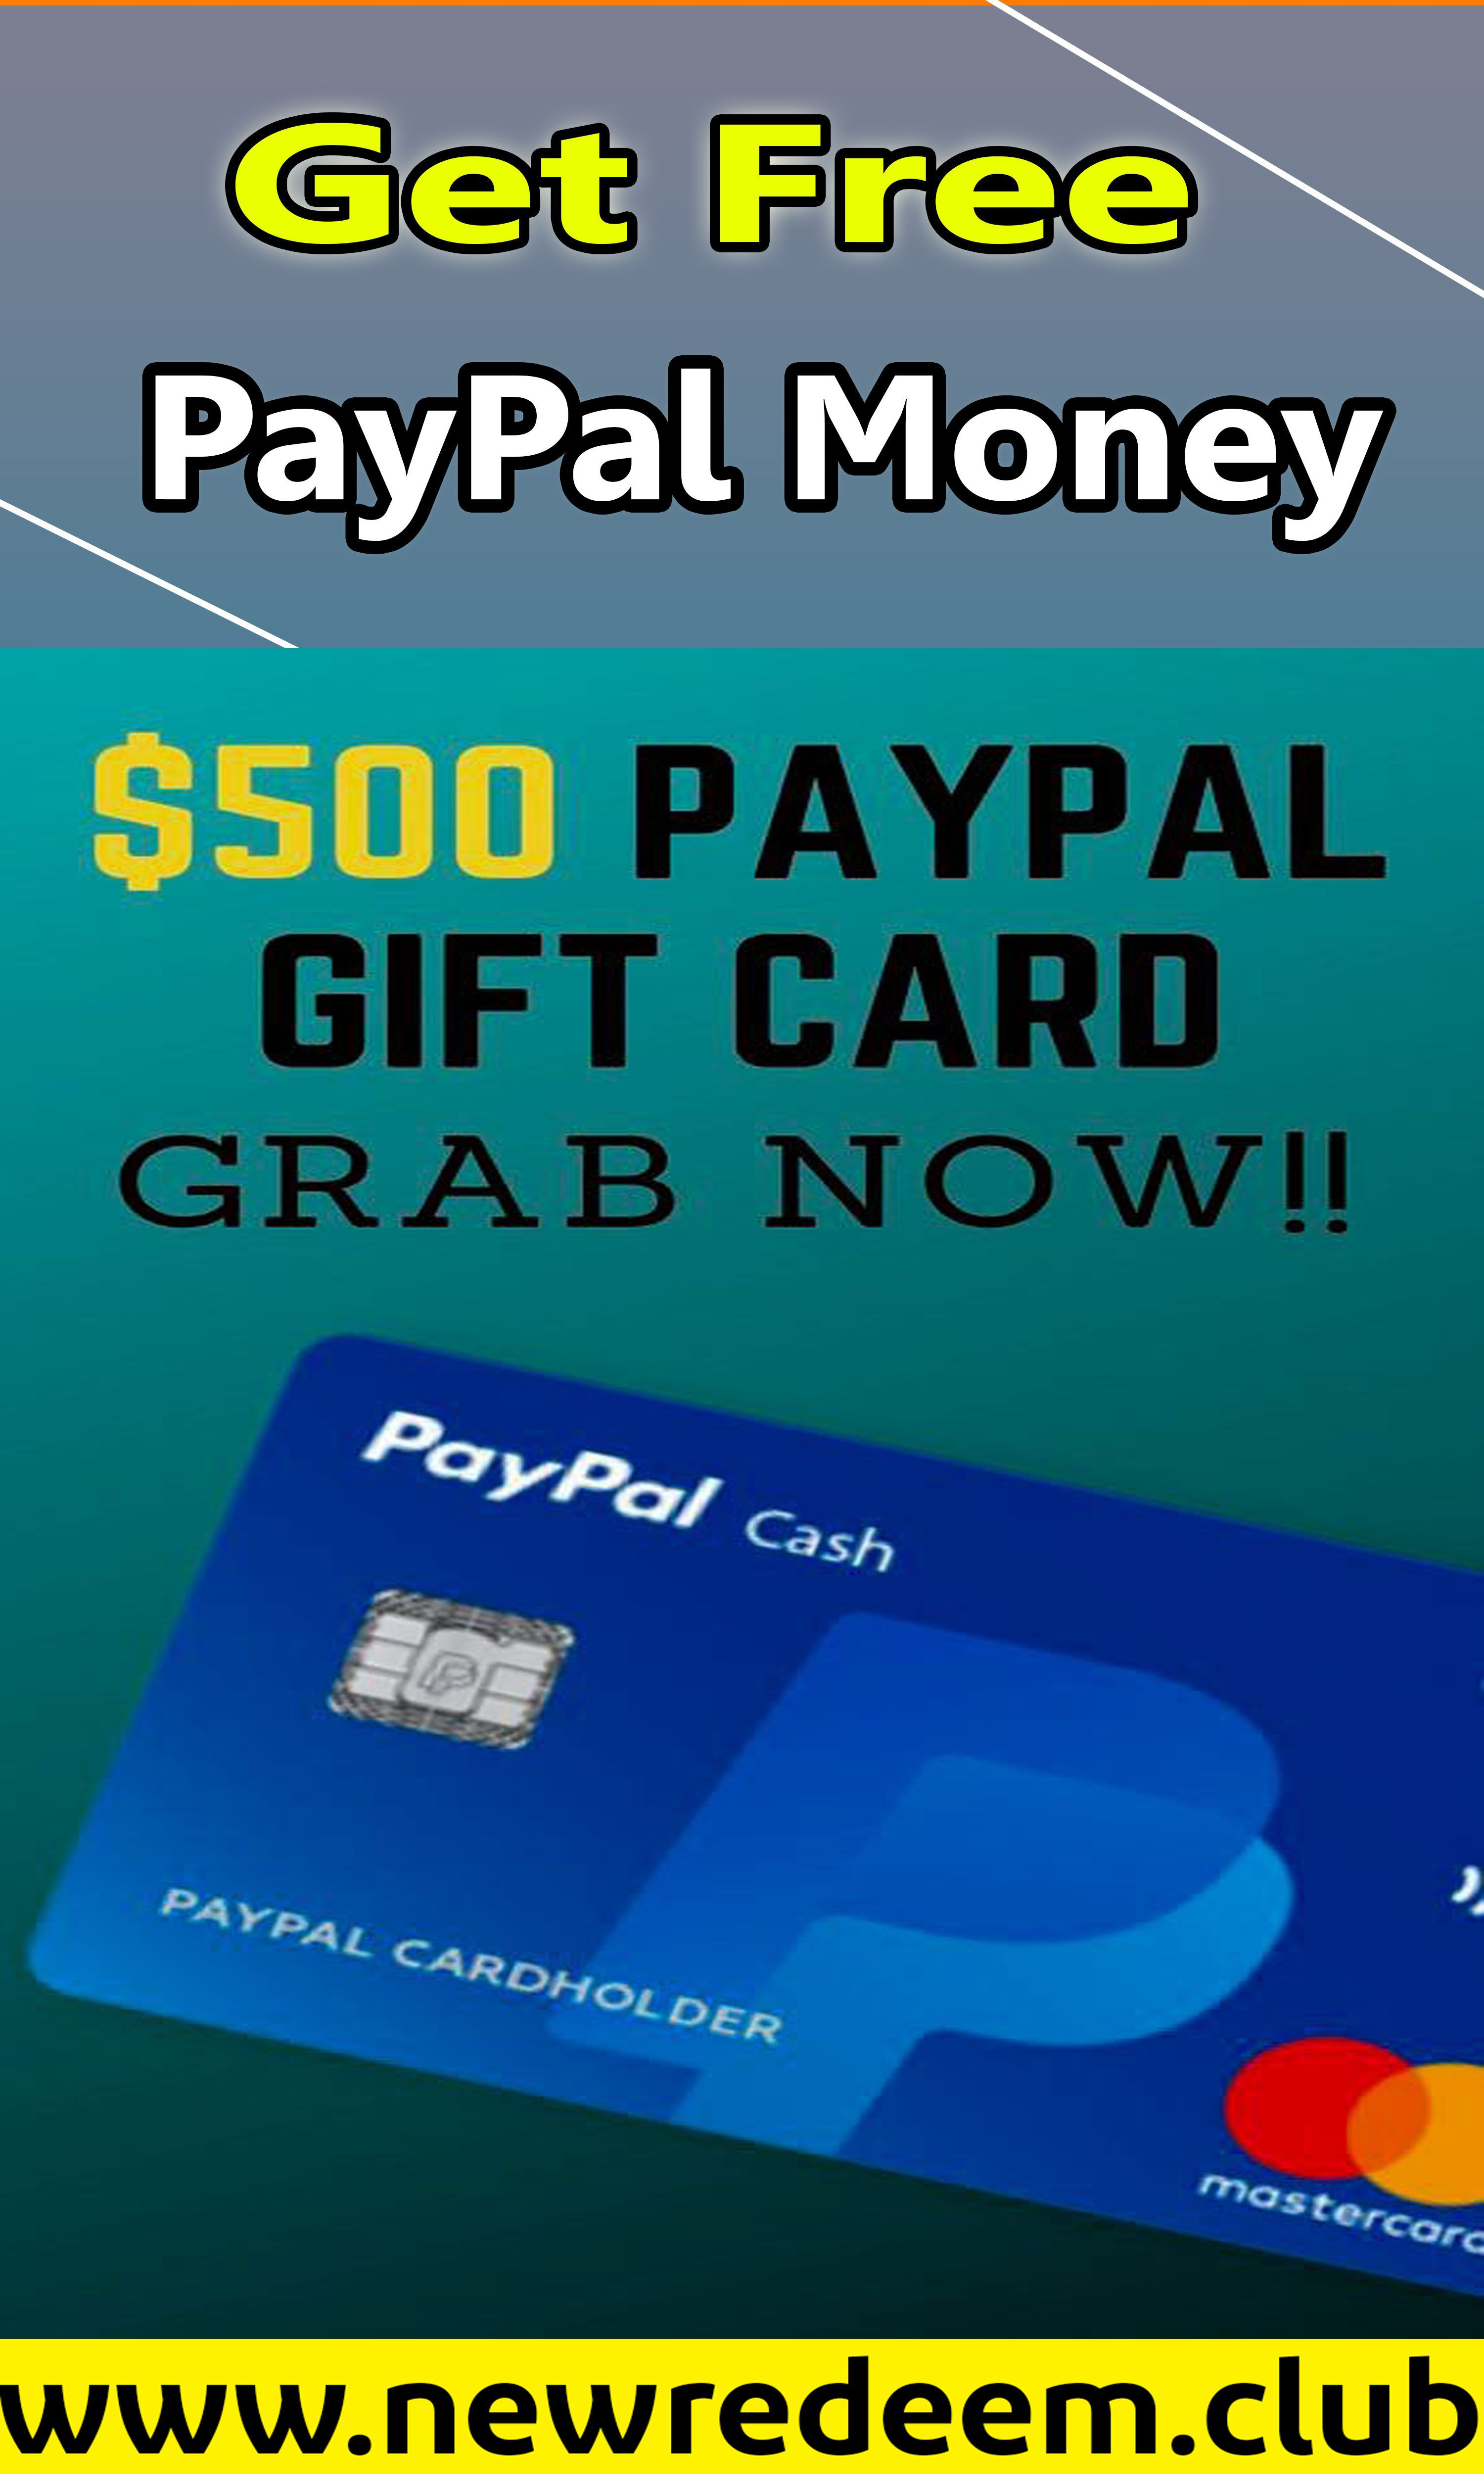 Can You Buy Gift Cards Online